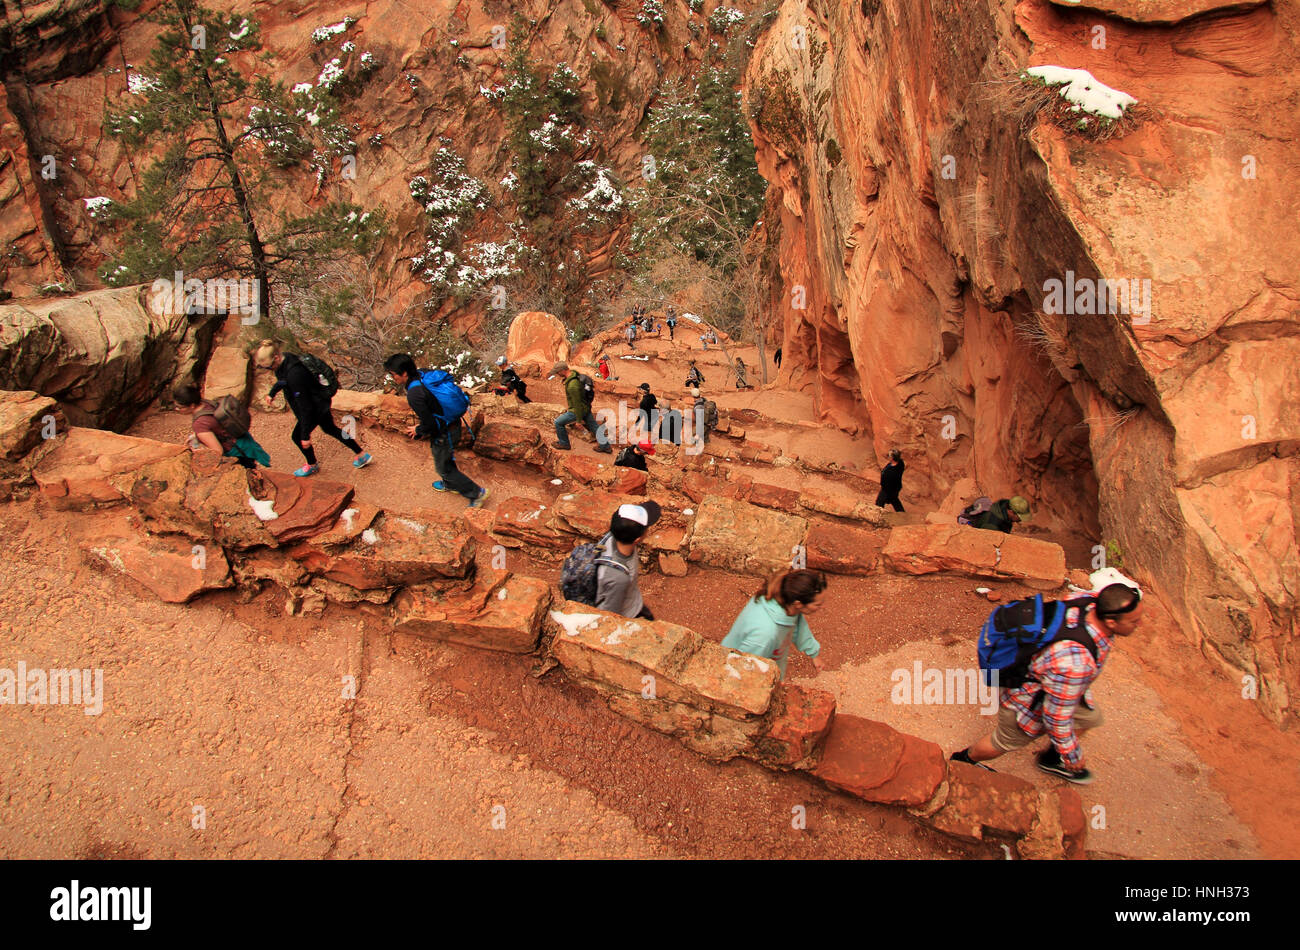 ZION NATIONAL PARK, UT - MARCH 30: Hikers make their way along Walter's Wiggles, a series of sharp switchbacks along Stock Photo